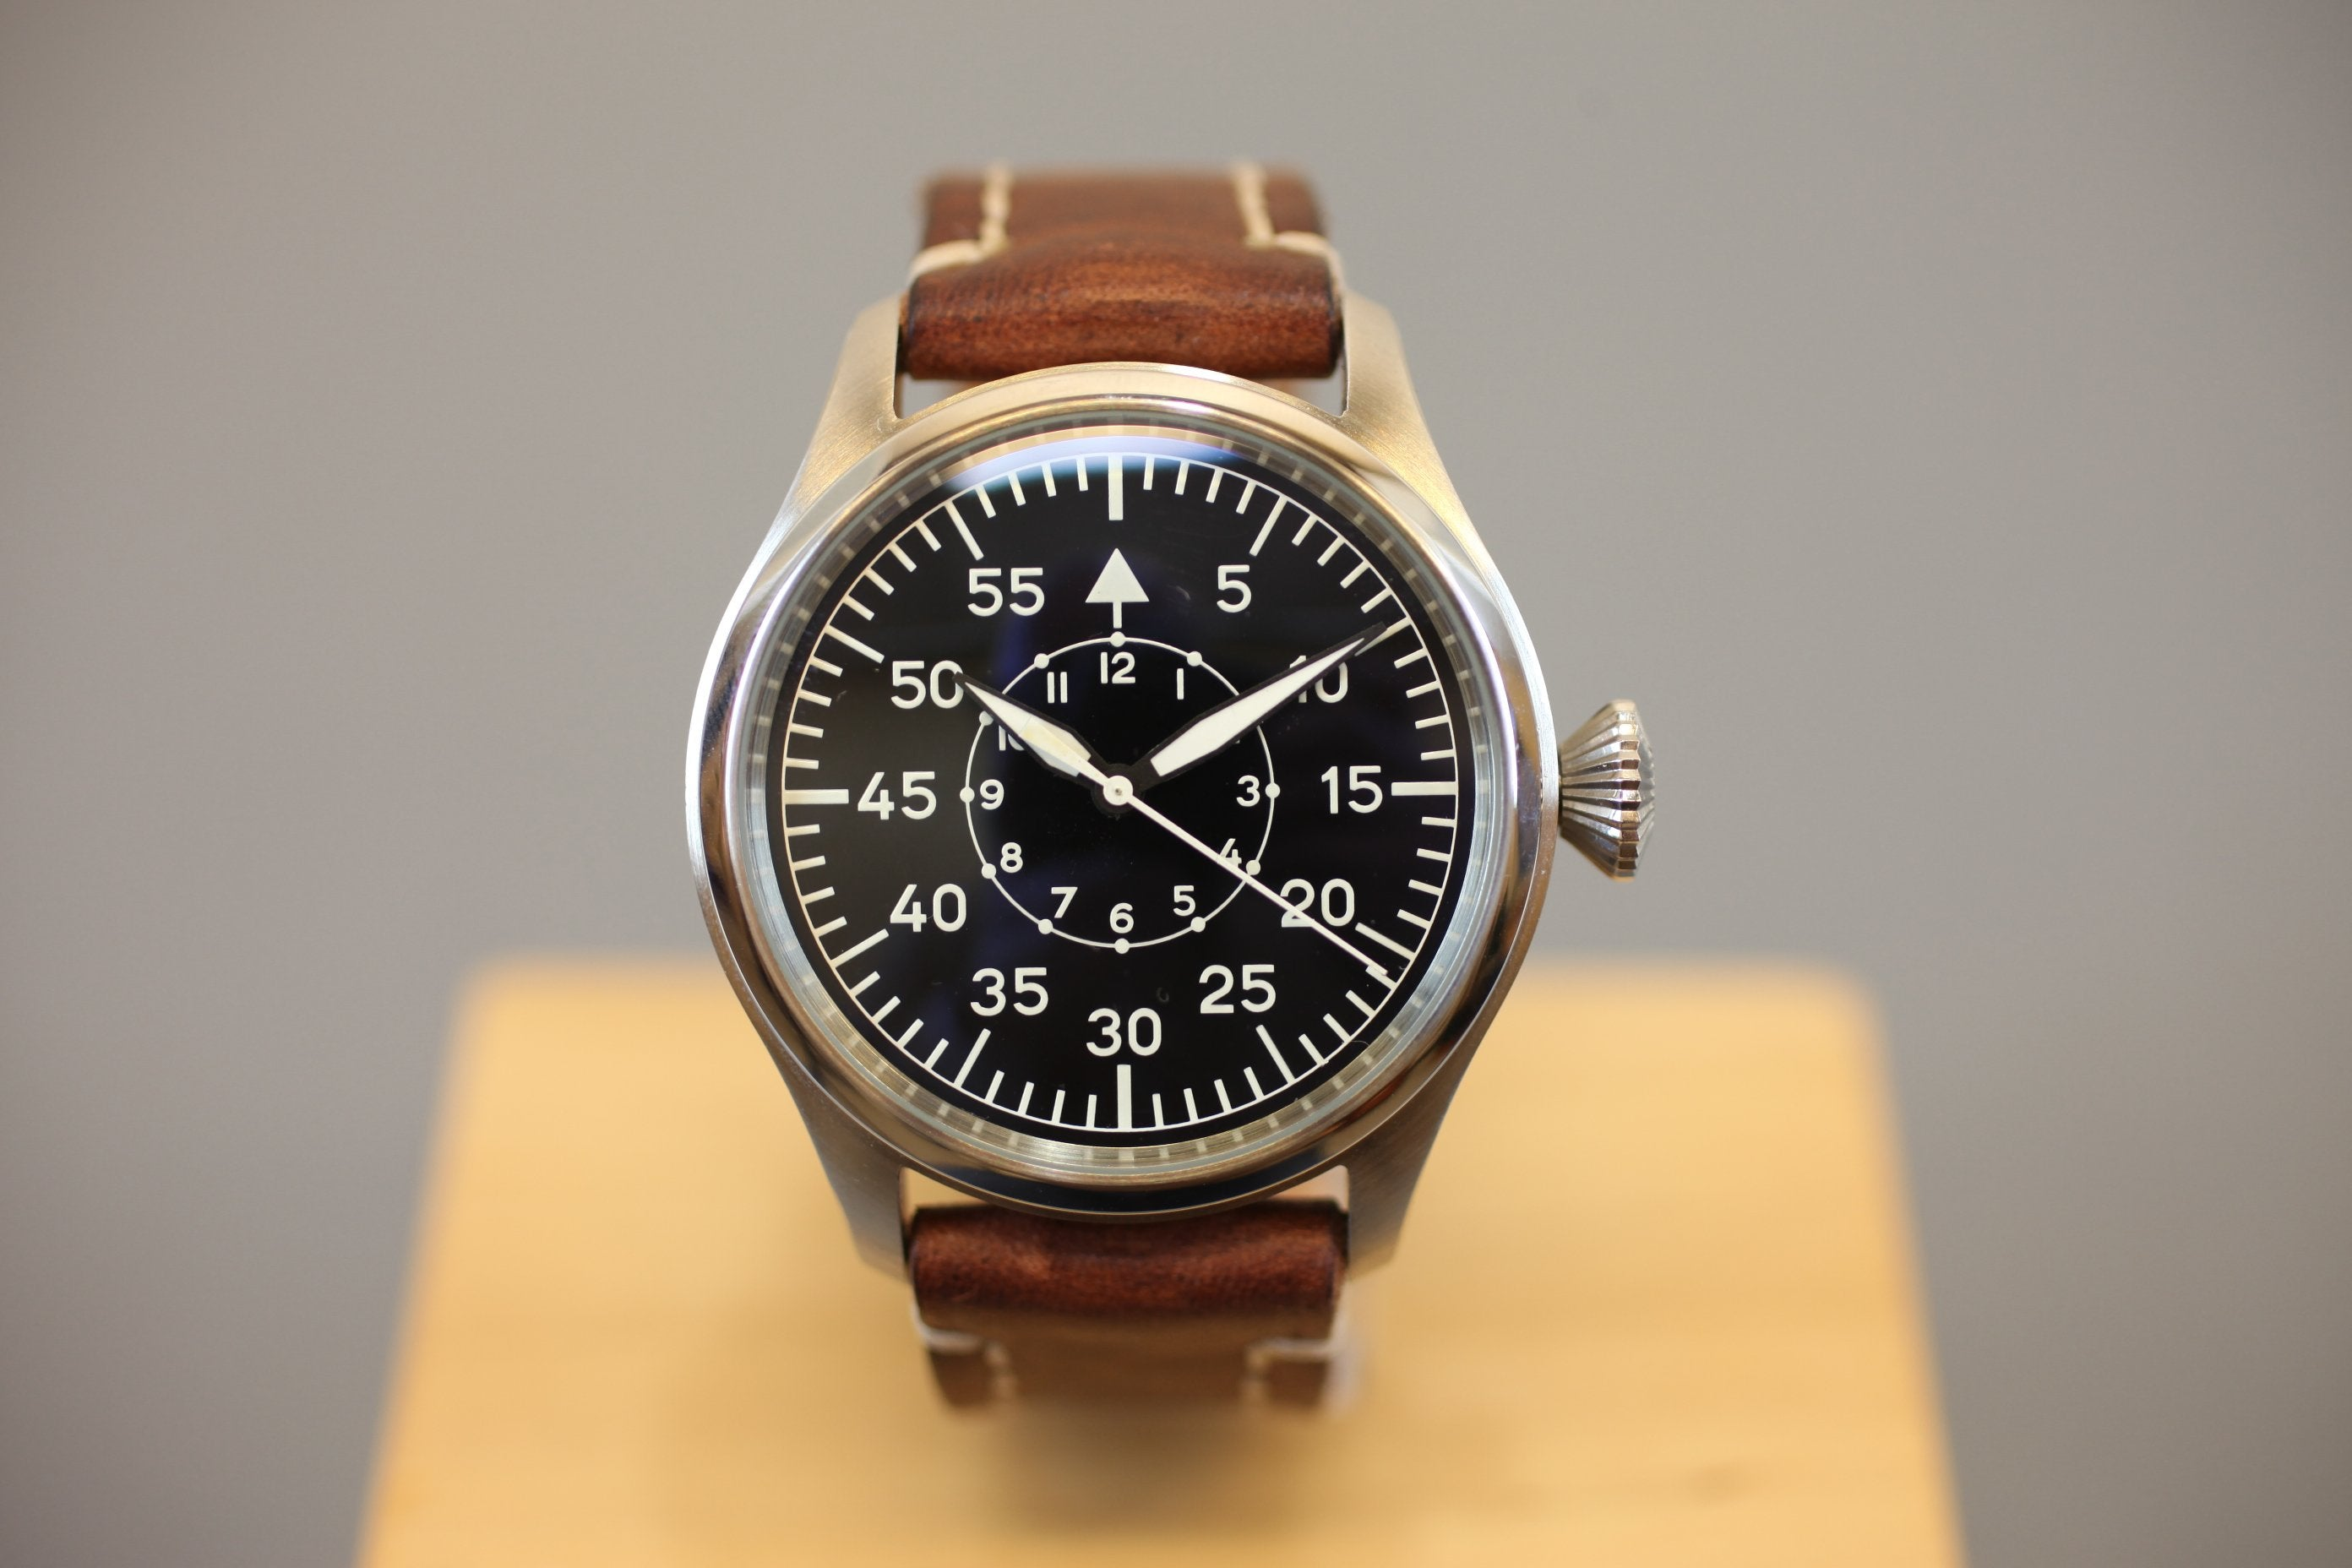 Big Pilot Watch 47mm - Waterproof Automatic Sports Watch - Handmade Watch